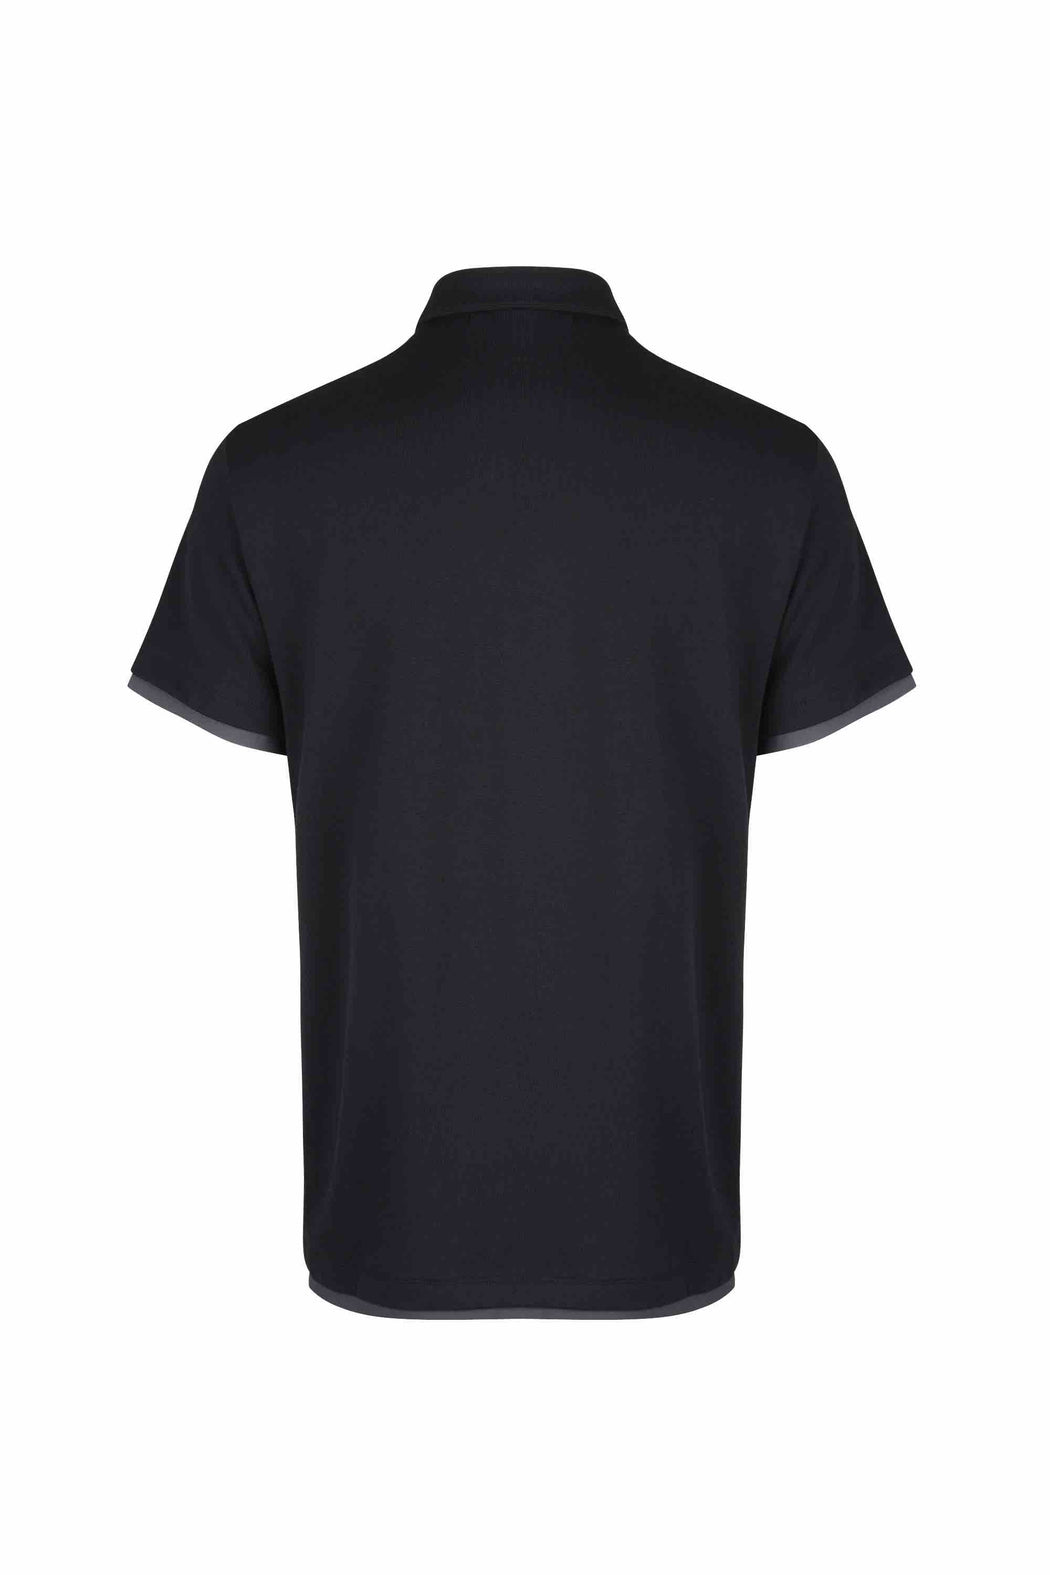 Back view of Men Contrast Polo Shirt, made with Organic Cotton in Black